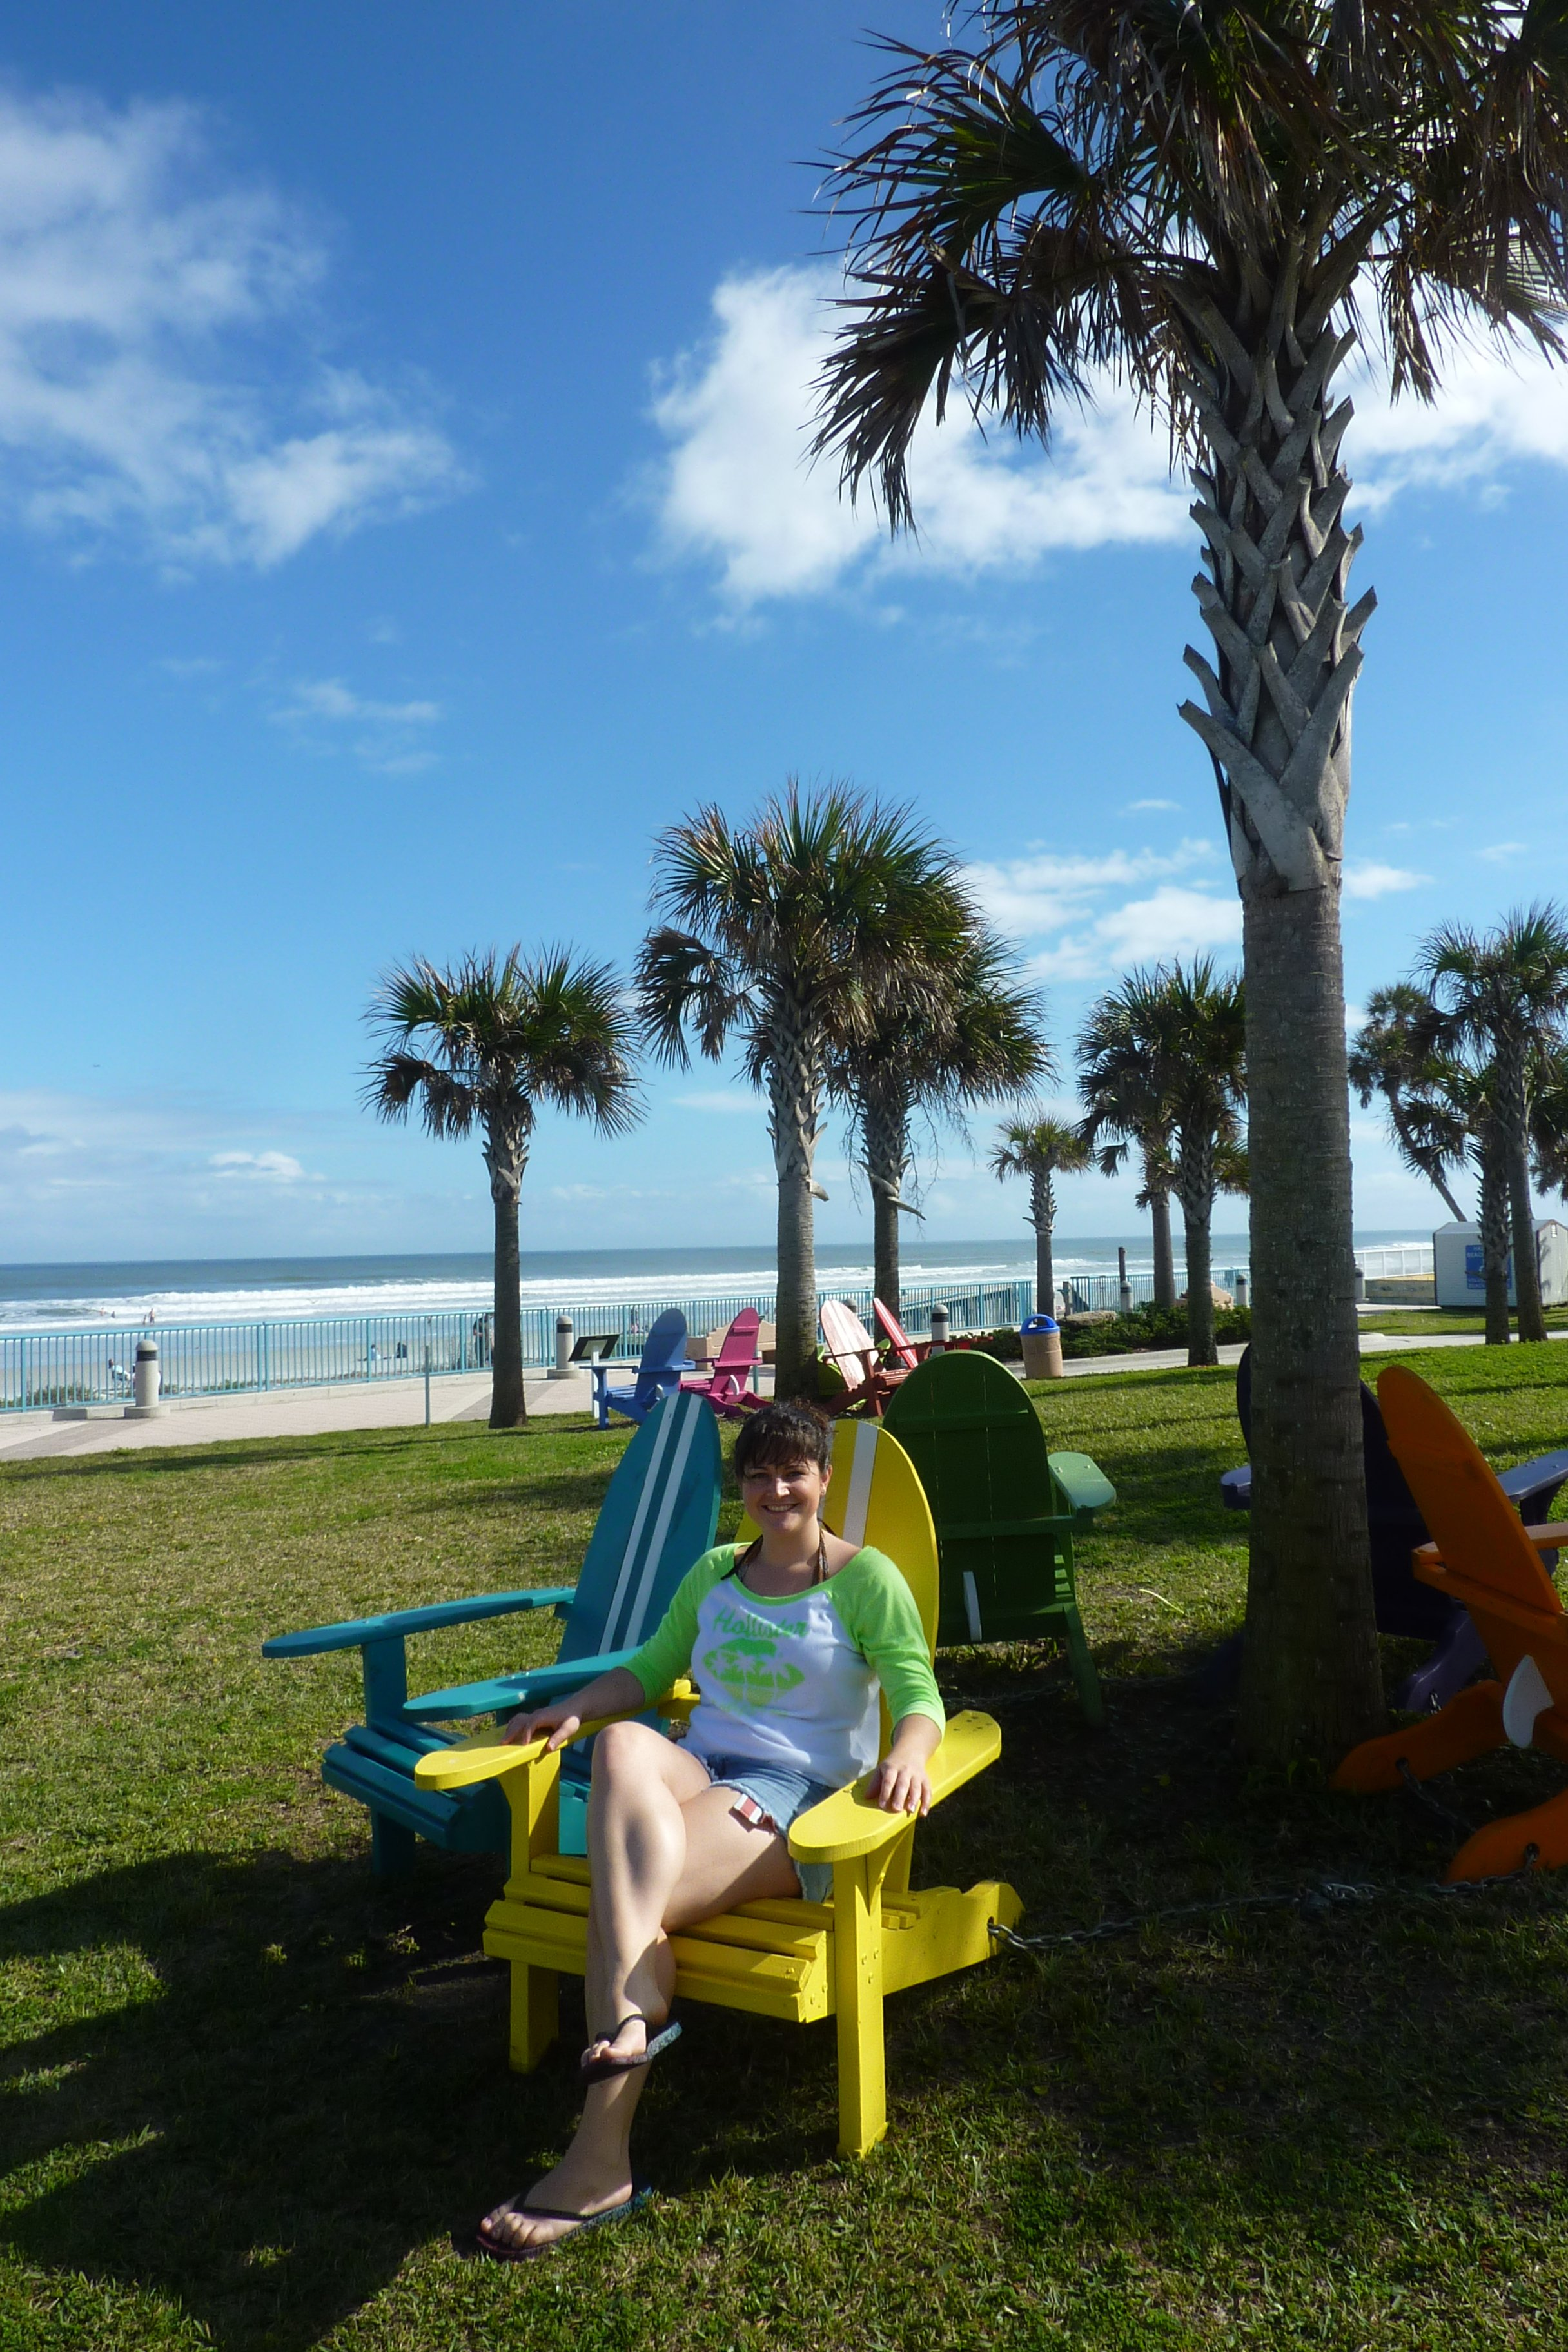 daytona-beach-1-37